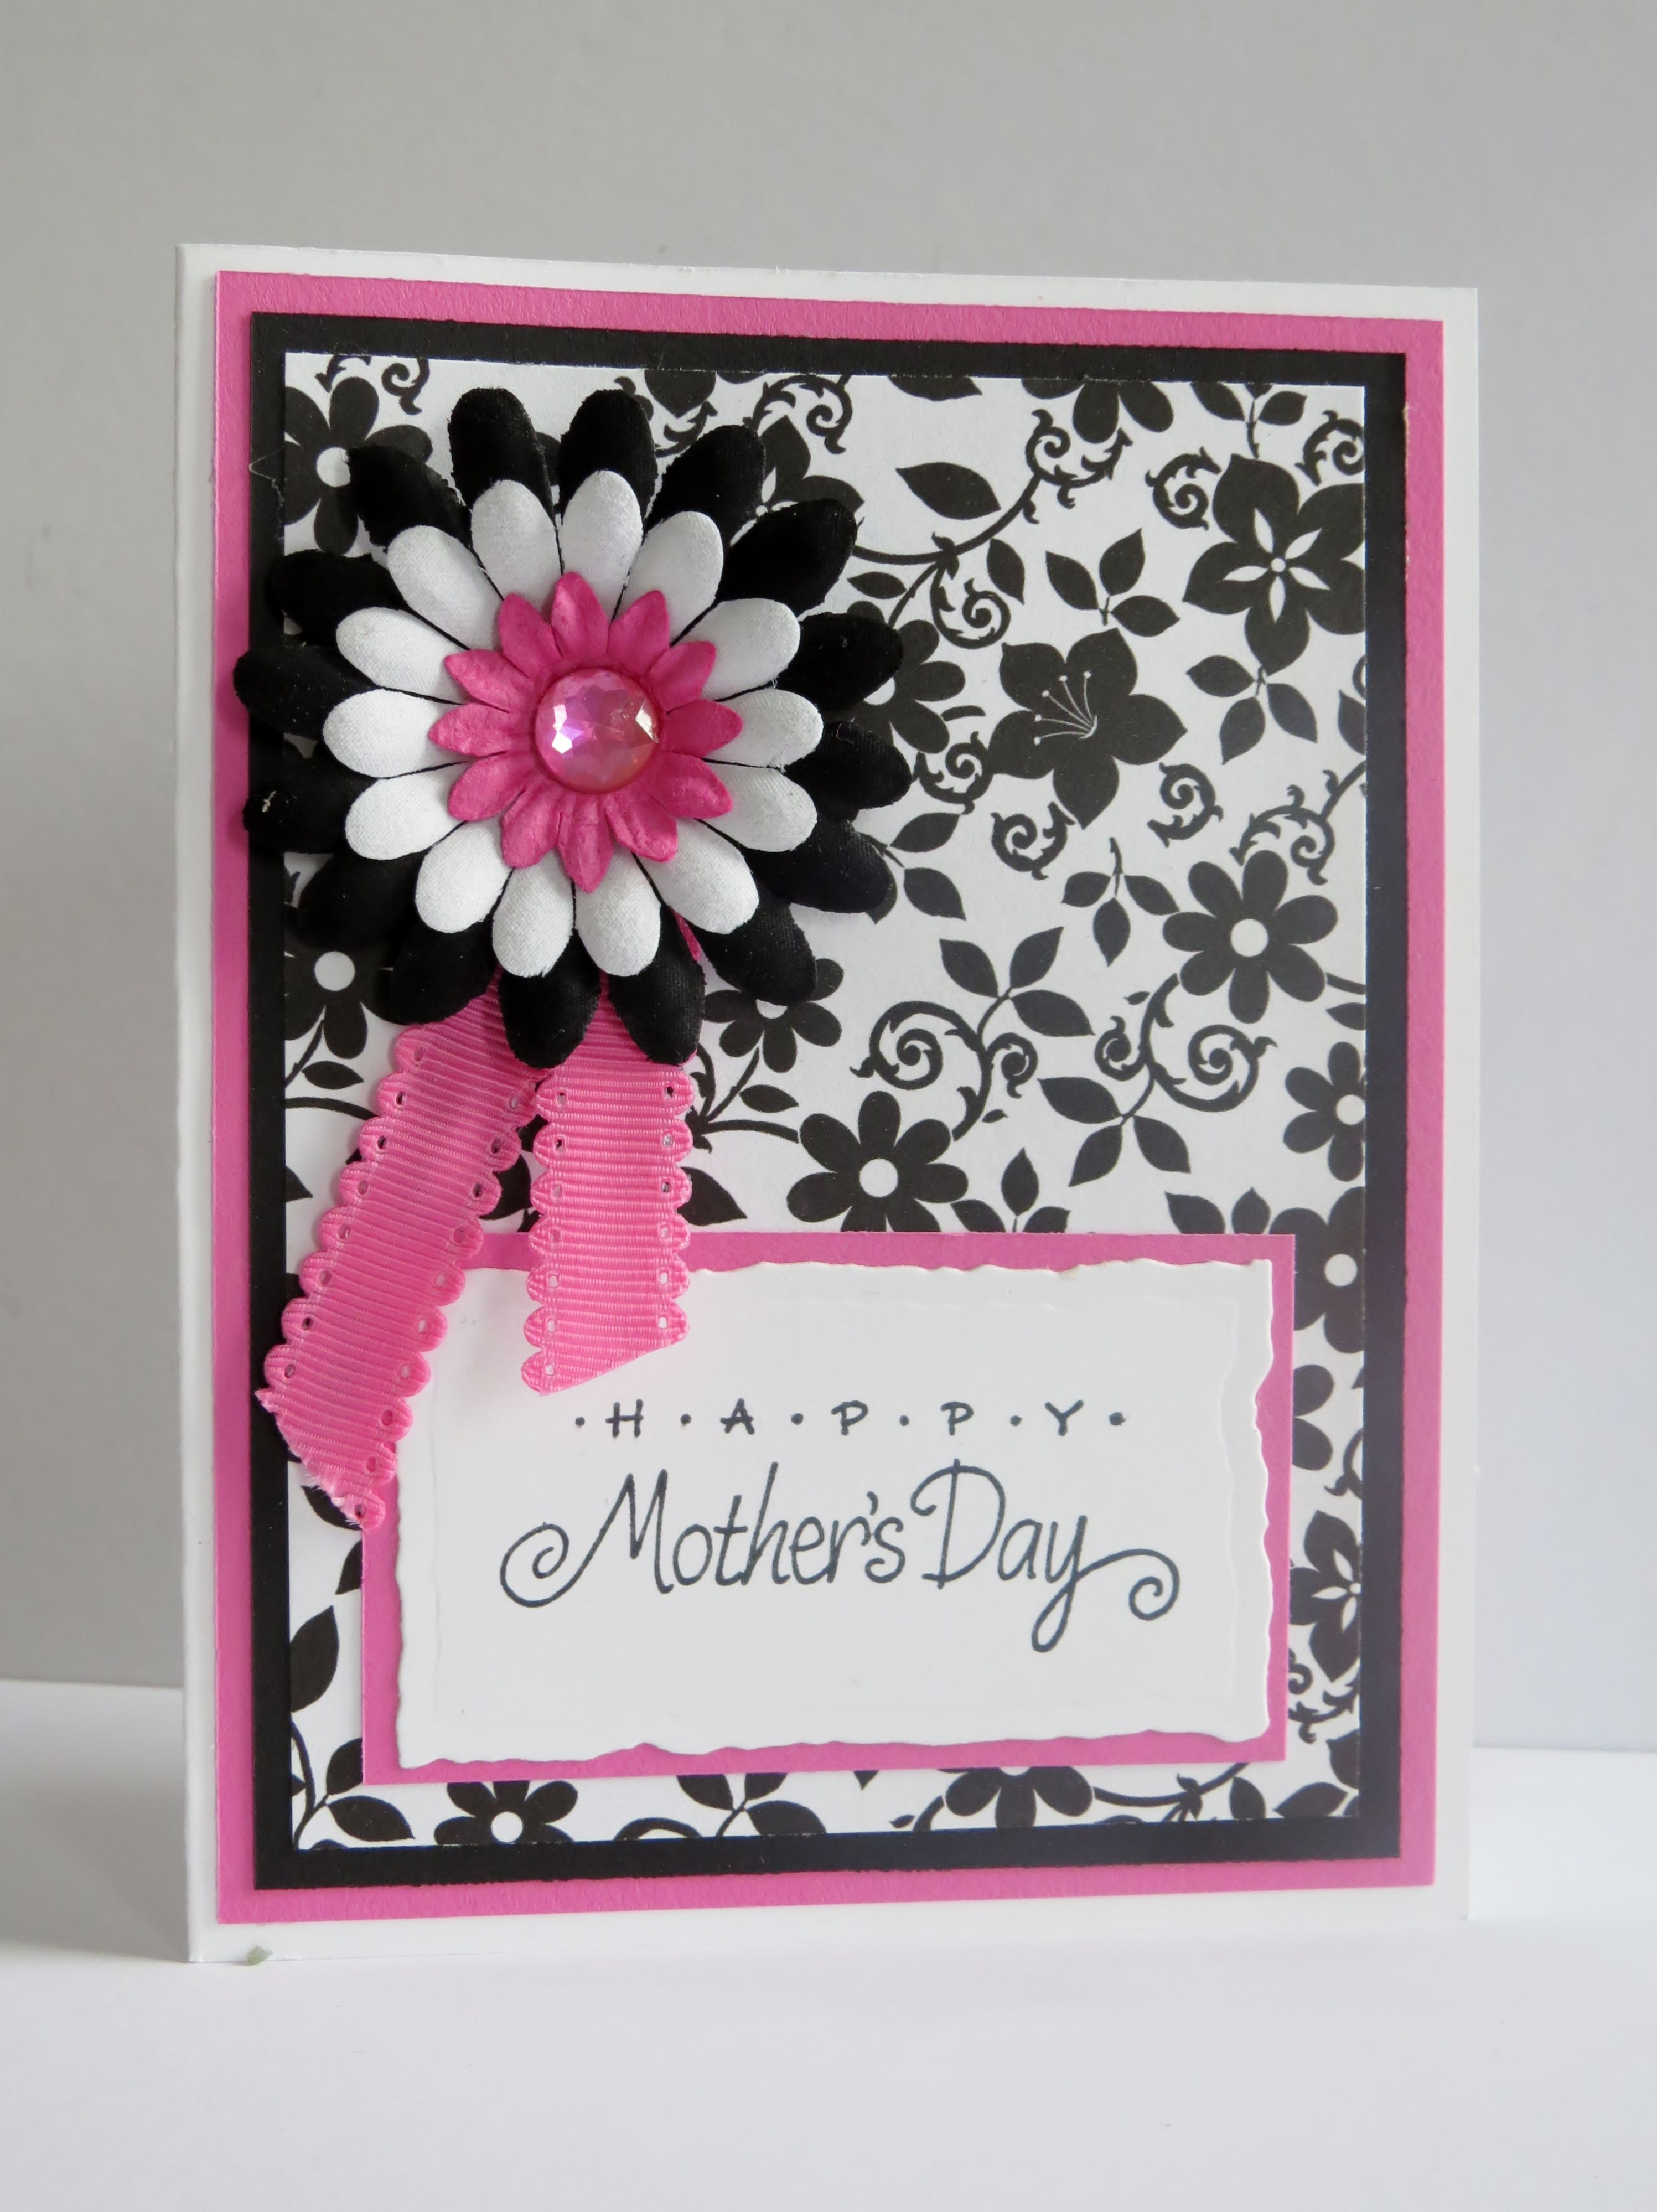 Handmade Mothers Day Card.  Black, white and pink.